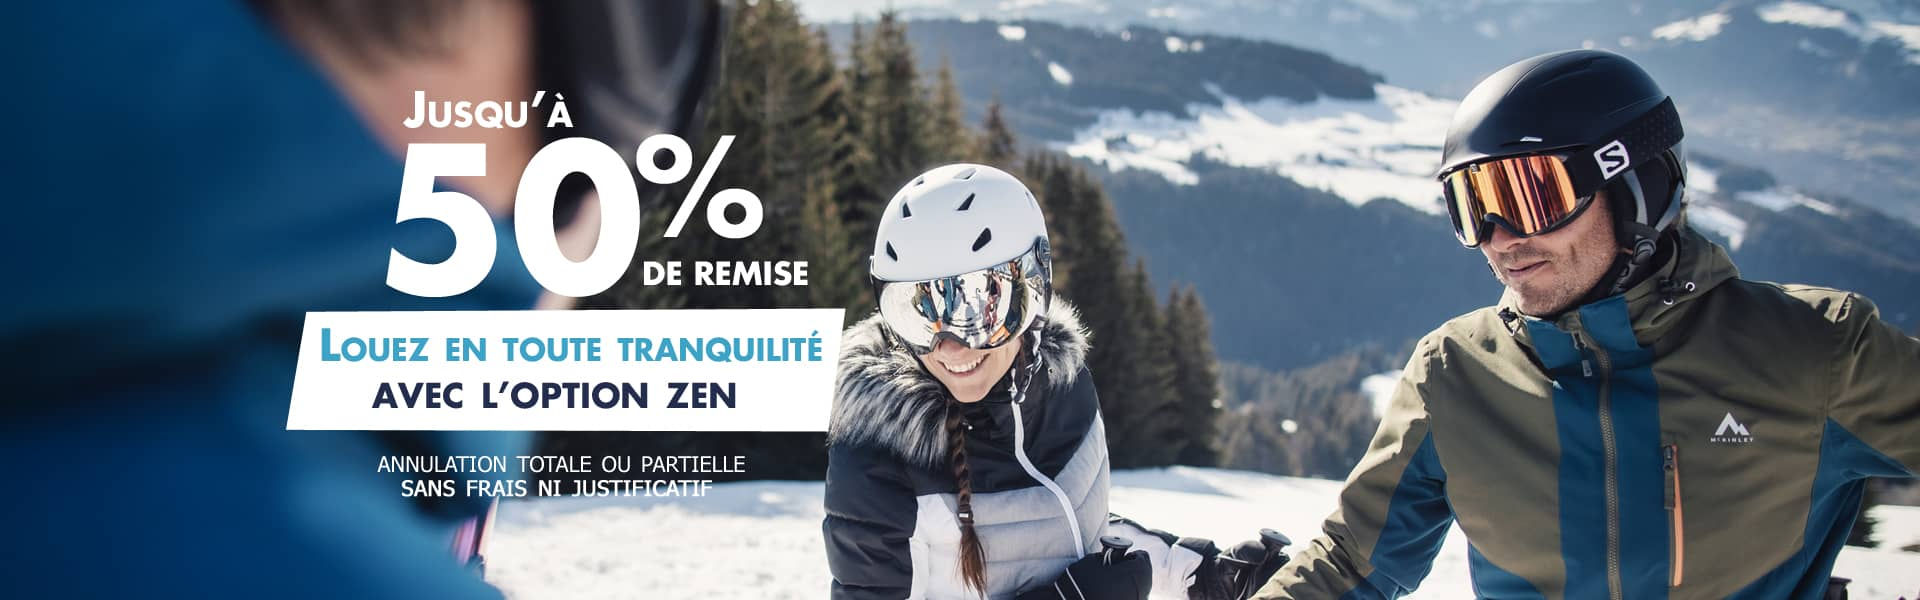 Location ski Intersport Courchevel 1550 Village